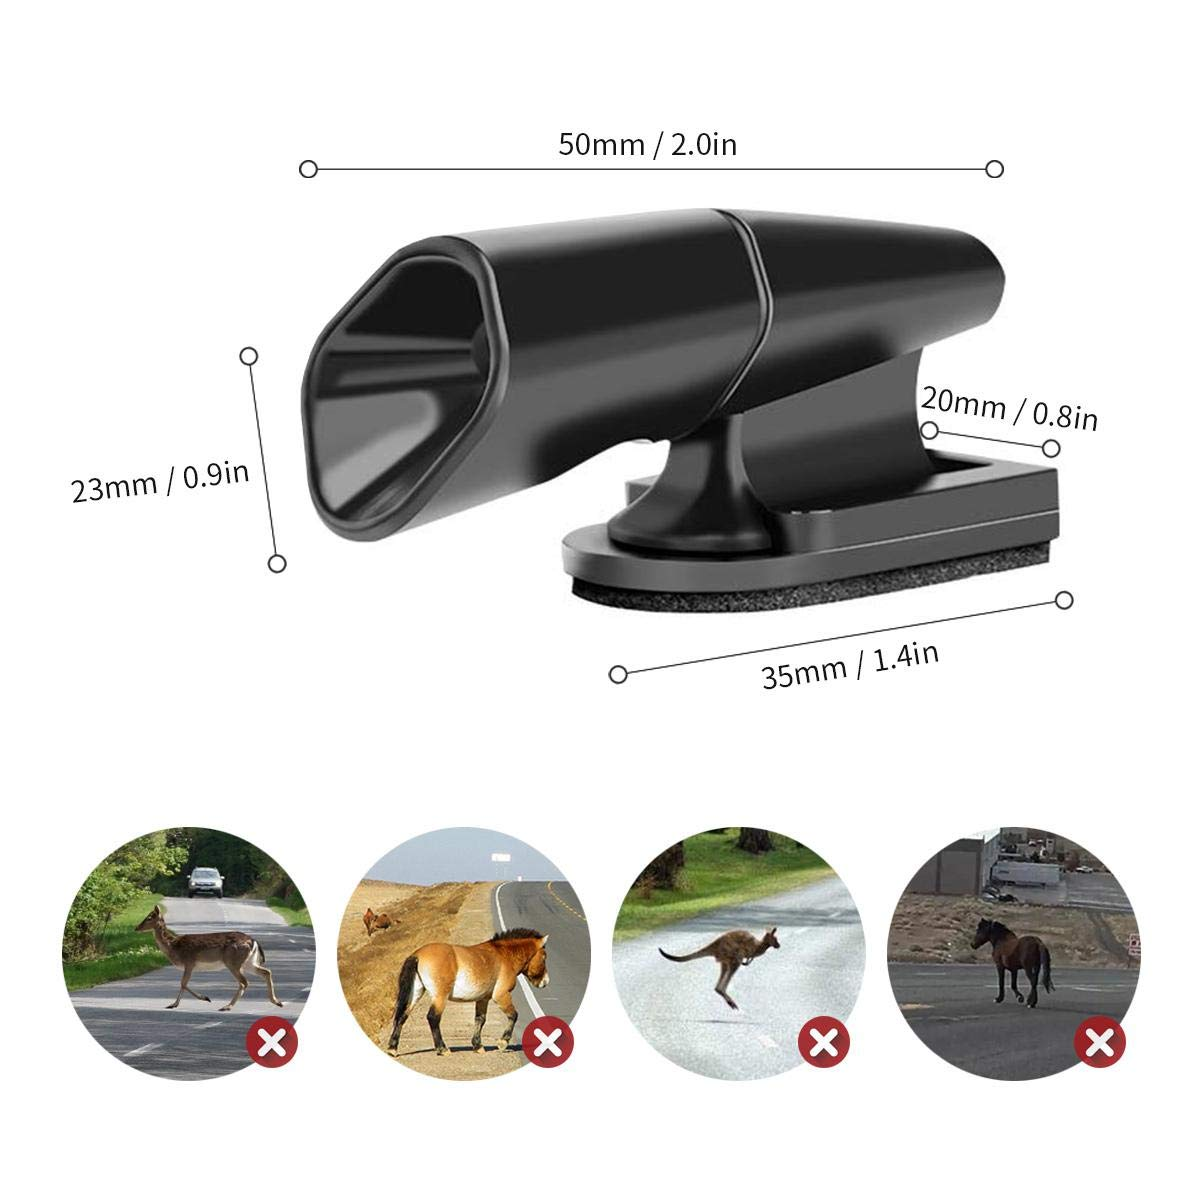 Ceepko Latest Upgrade 4PCS Save A Deer Whistles Deer Warning Devices for Cars /& Motorcycles Include Ultrasonic /& Wind Whistle Car Safety Accessories Gift